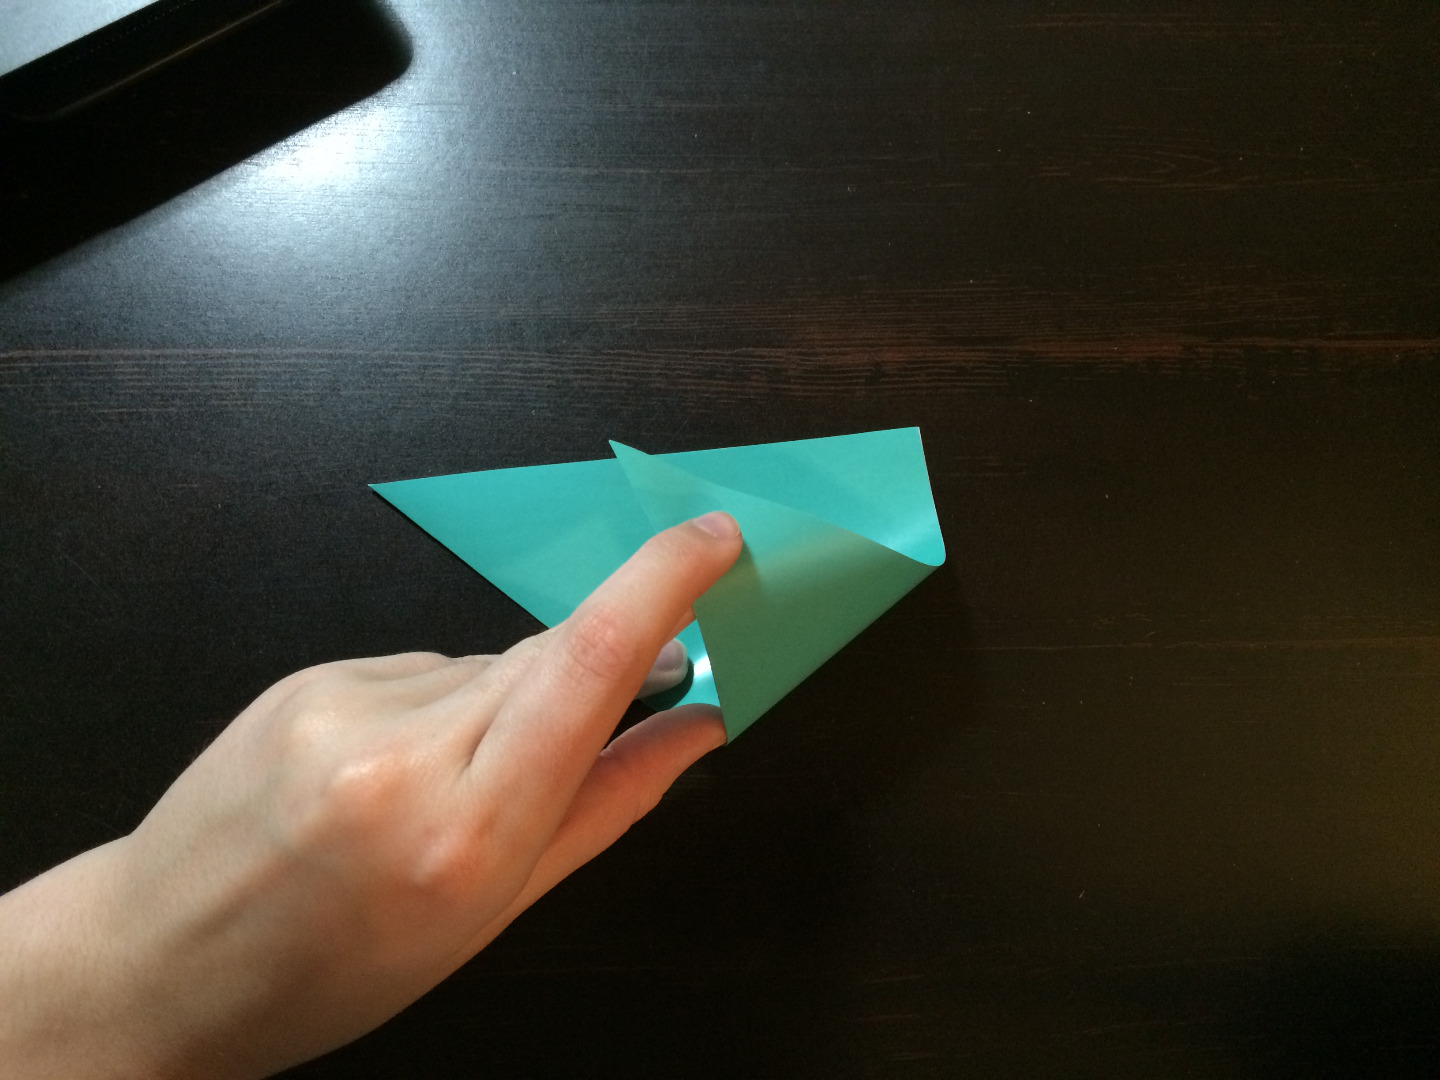 Picture of Second Fold: Similar to the First